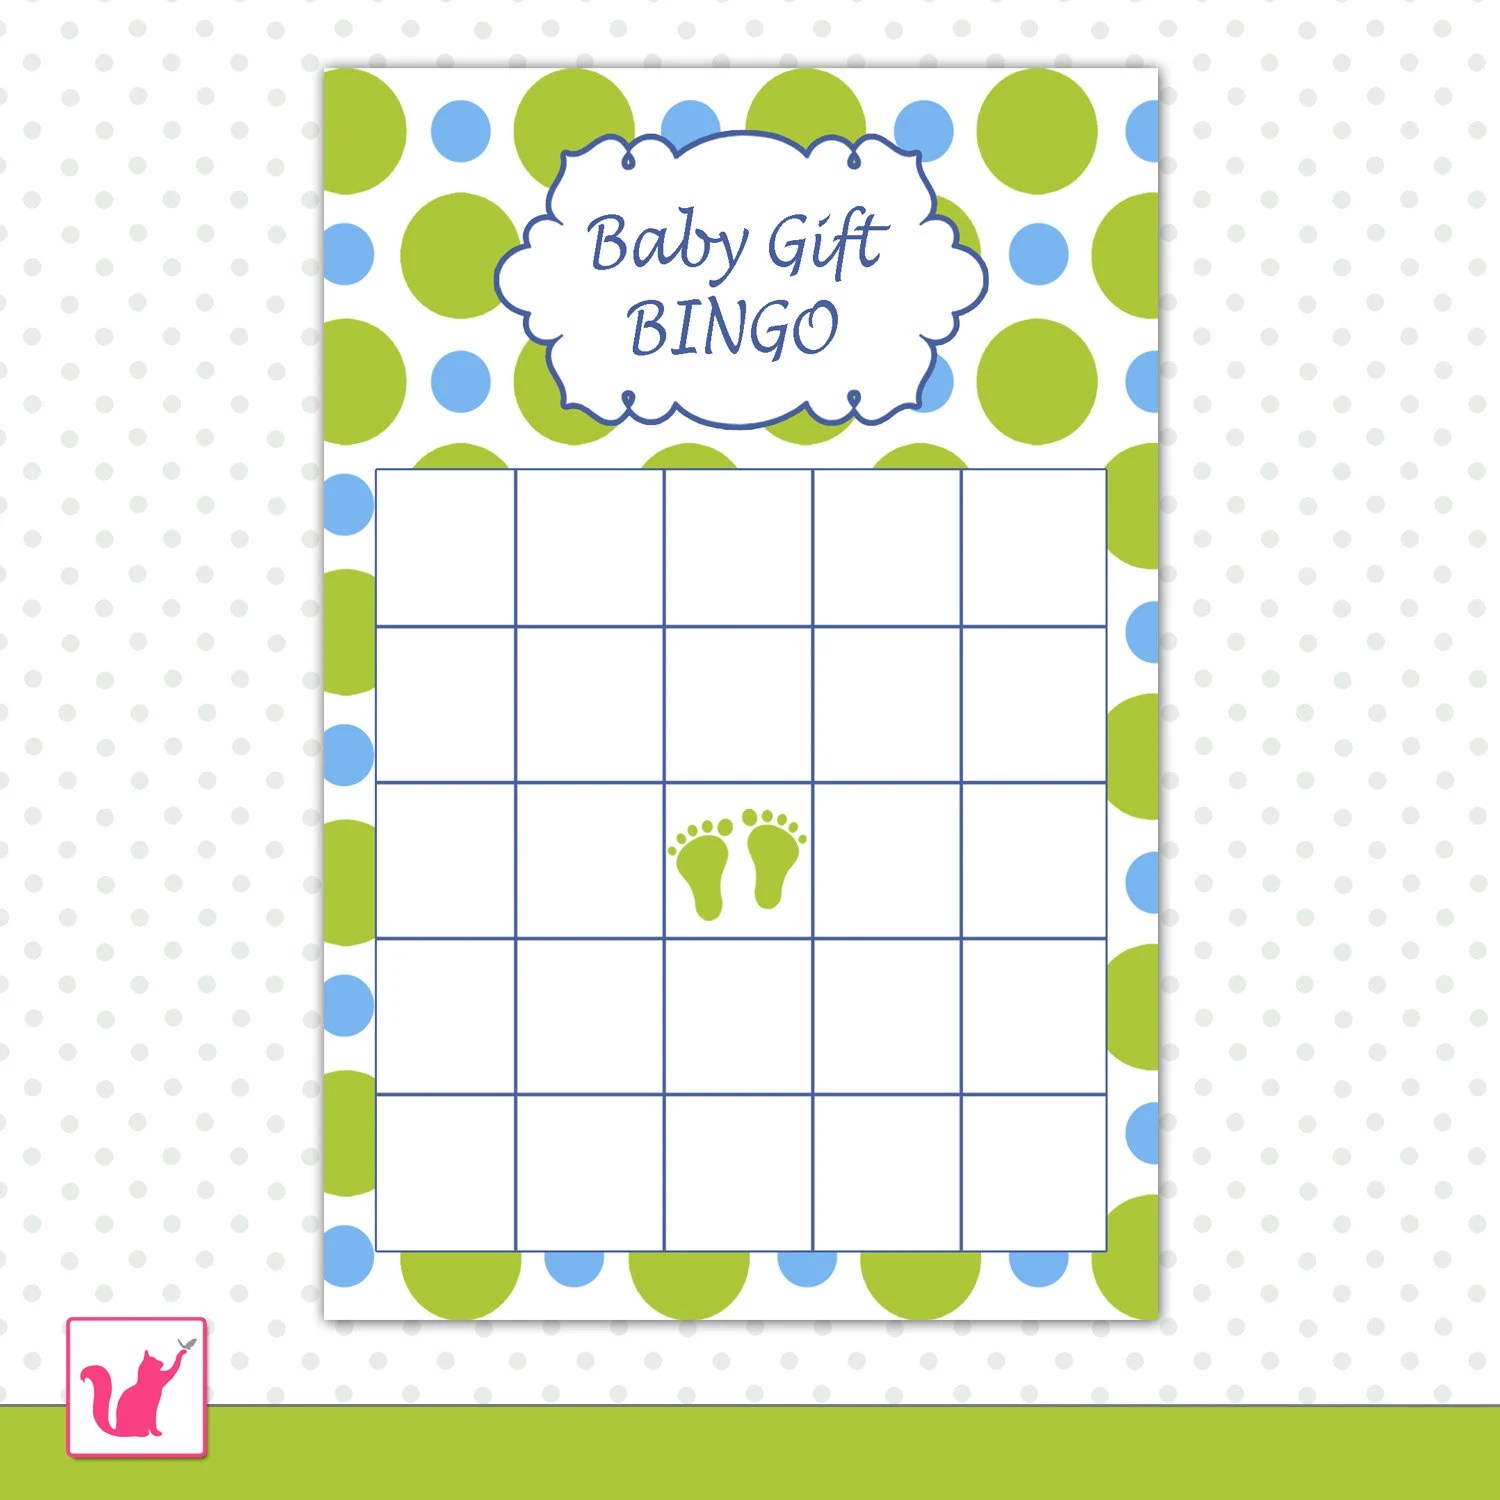 Baby Shower Bingo Card Blue Green Polka Dots Party Game